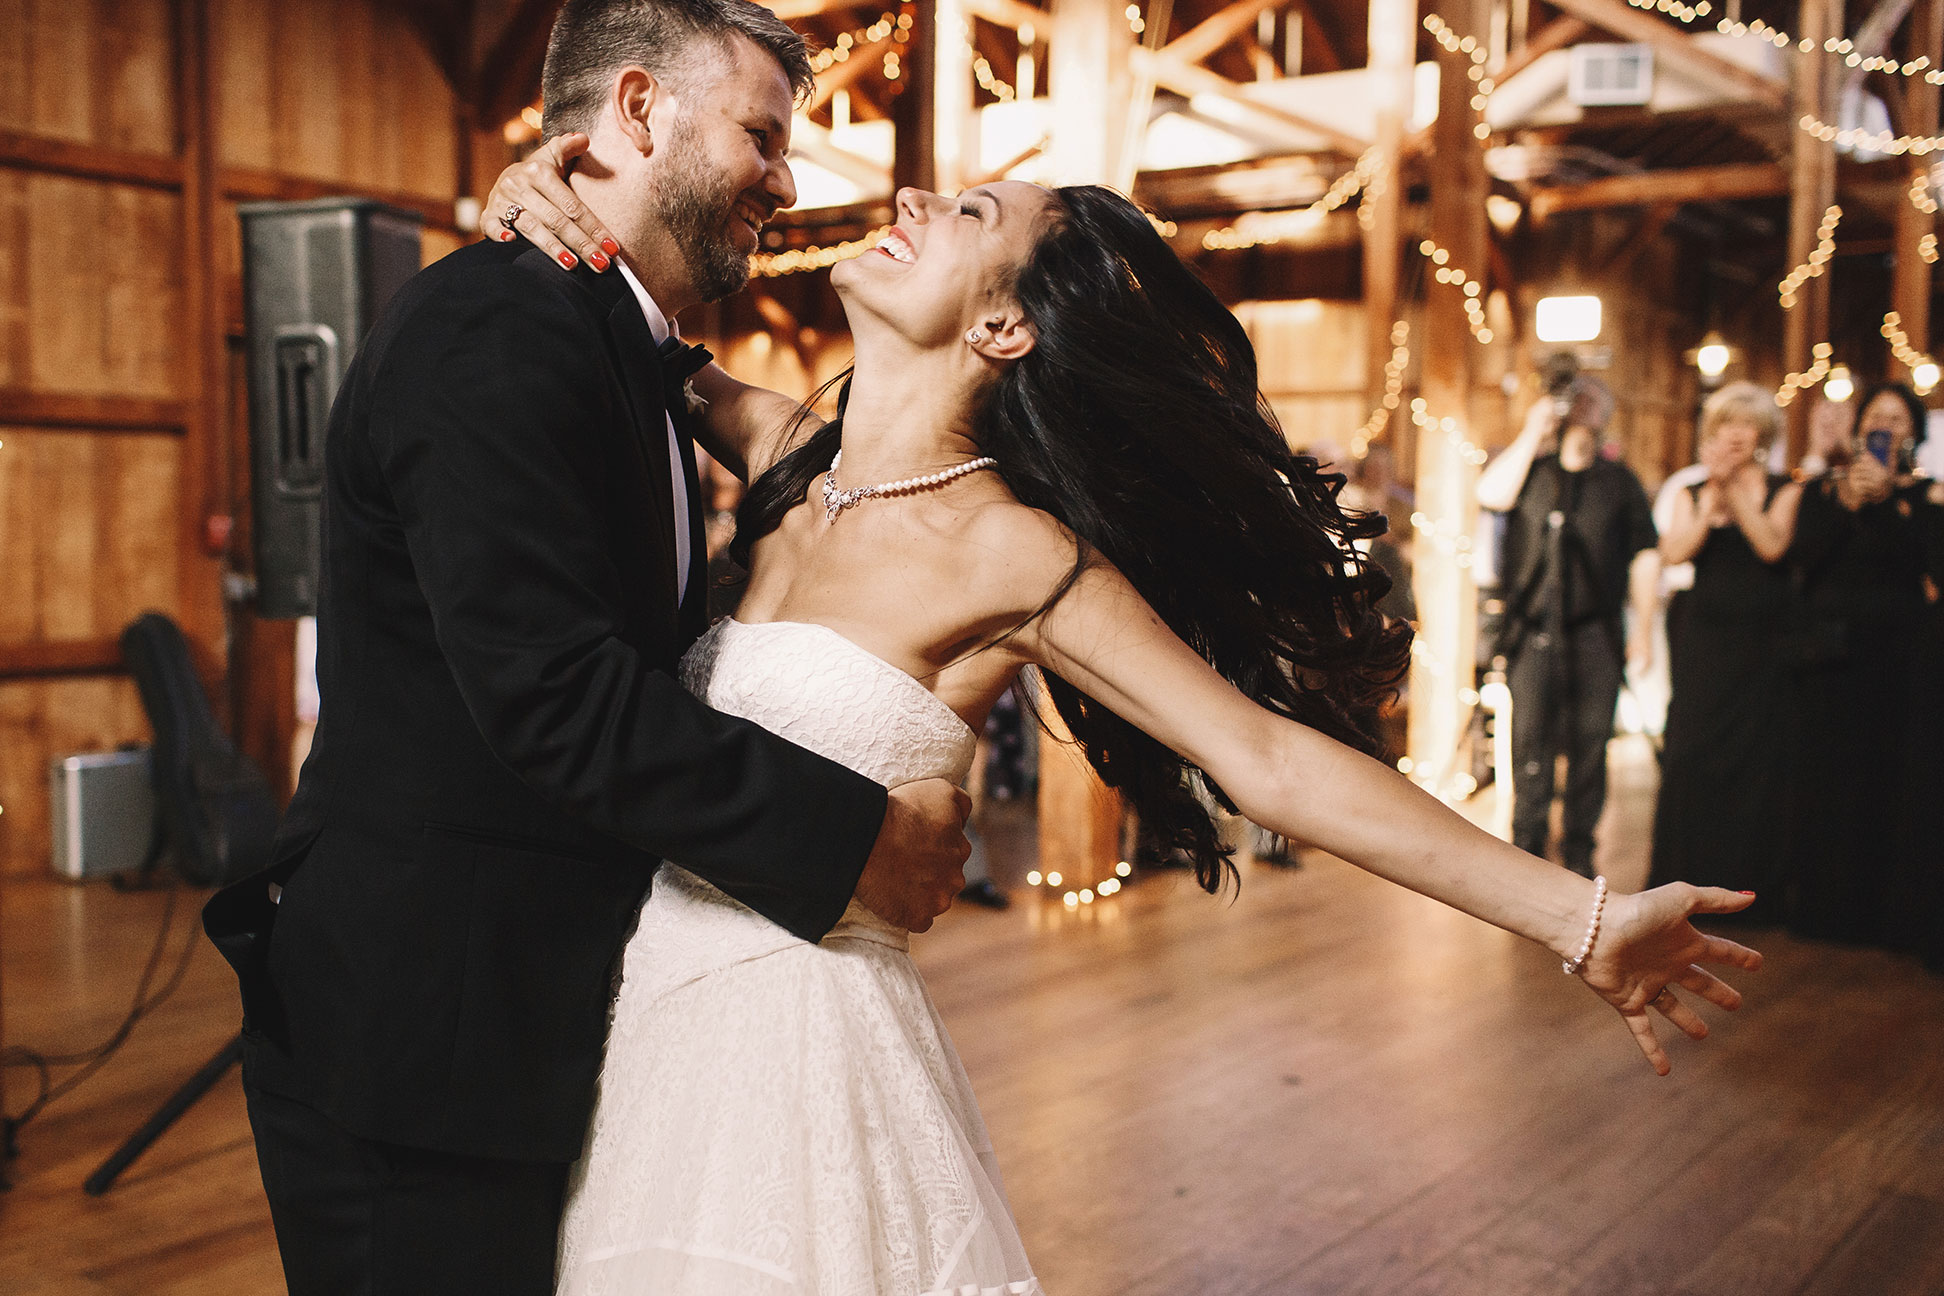 Get a perfect start your your wedding with MarShere Dance Studios